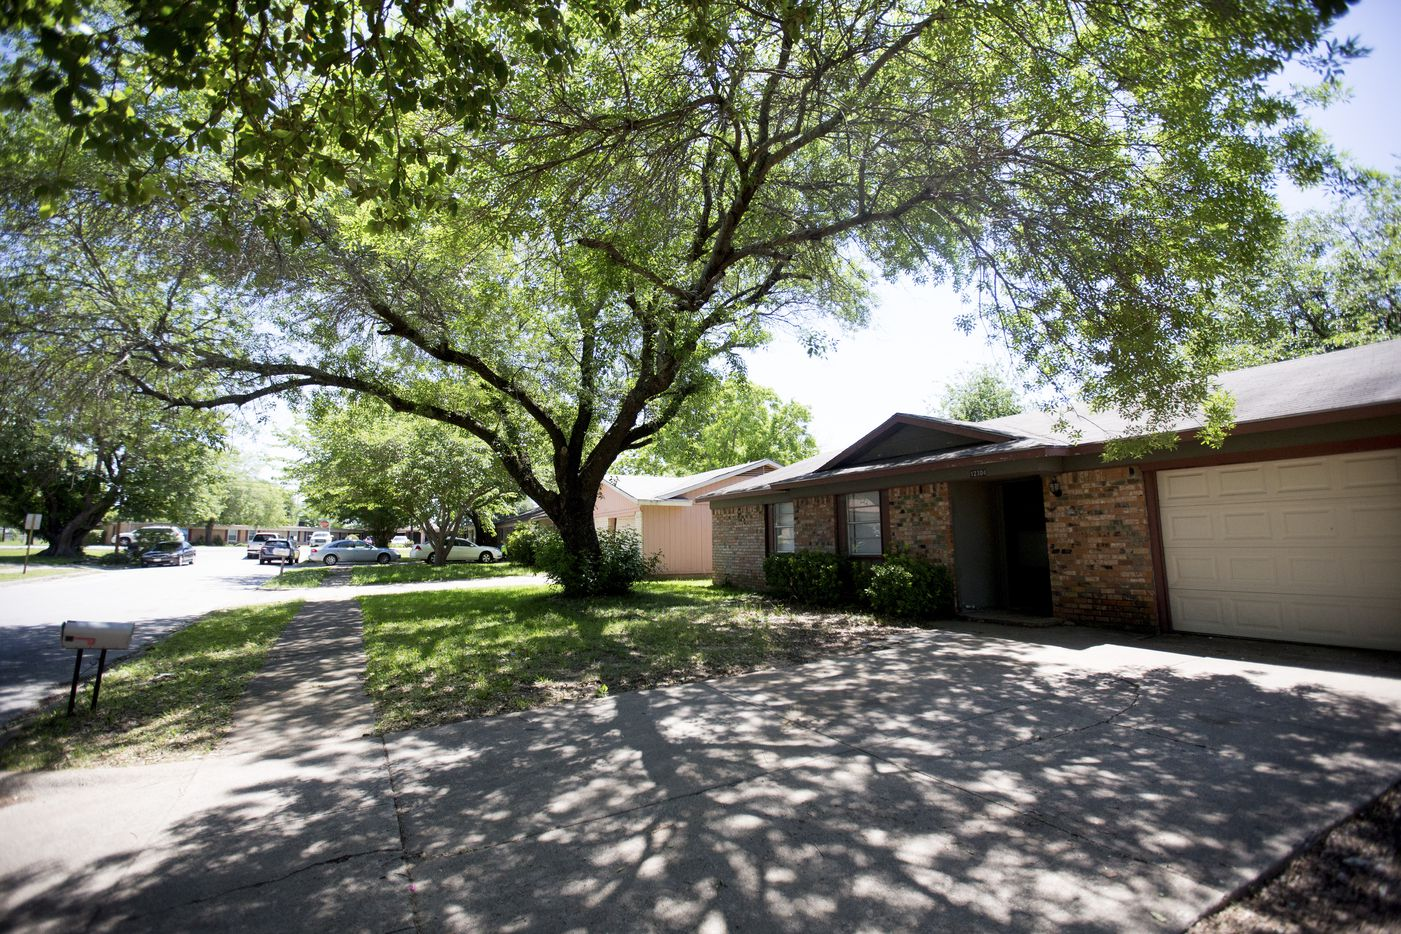 The home where 15-year-old Jordan Edwards attended a party before he was fatally shot in the head by a police officer in Balch Springs on April 29.